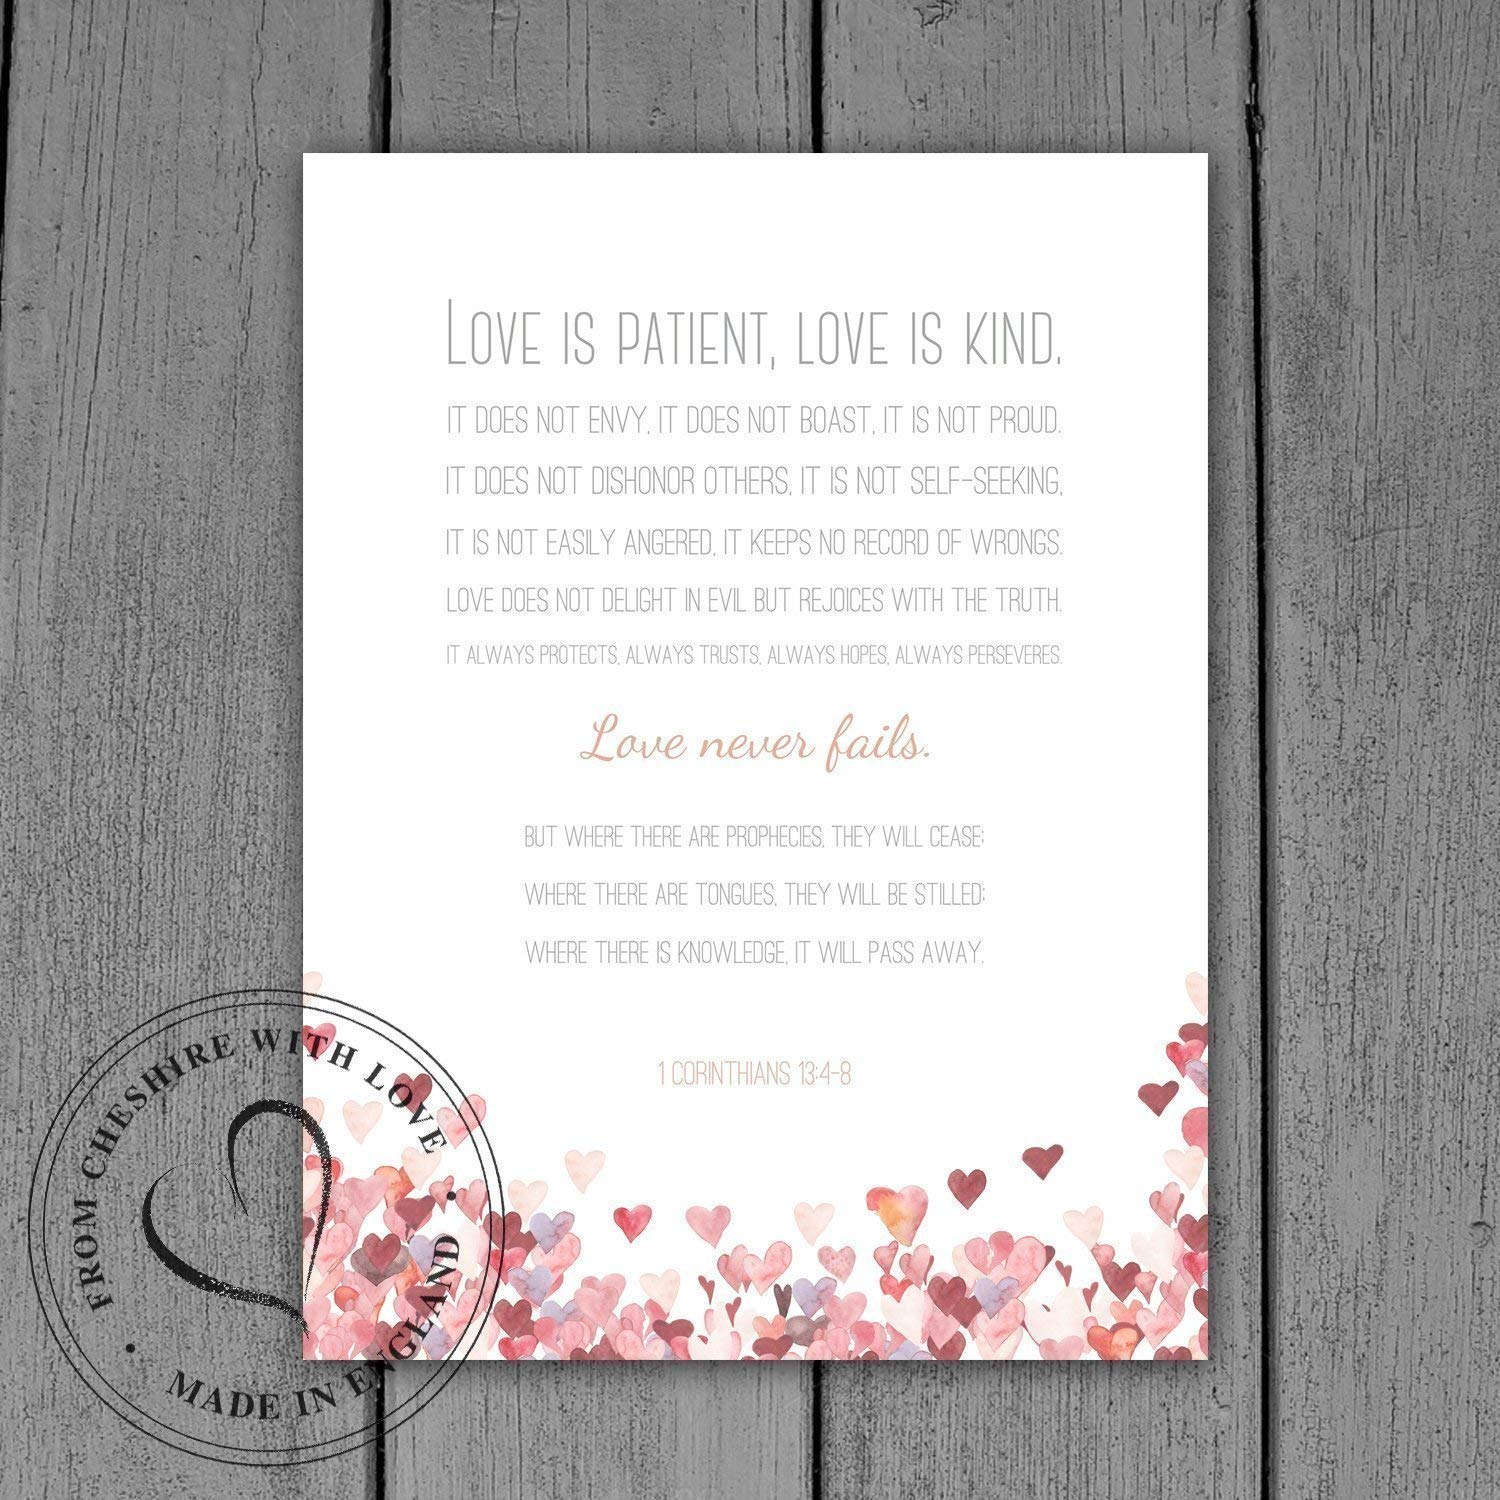 Amazon 1 CORINTHIANS 134 8 Bible Verse PRINT Love Is Patient